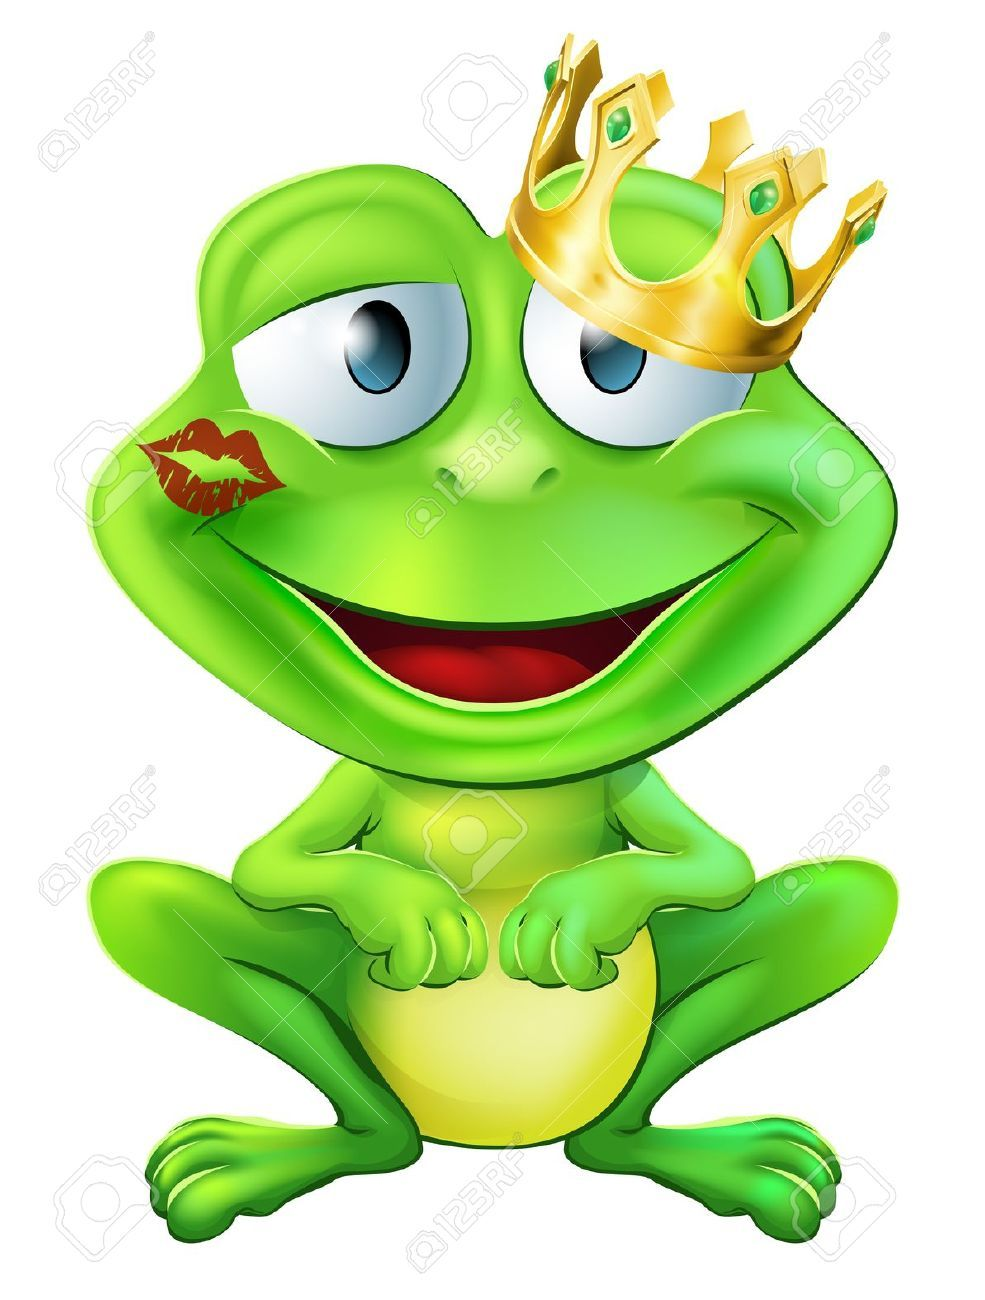 Frog Cartoon Stock Photos Images Royalty Free Frog Cartoon Images